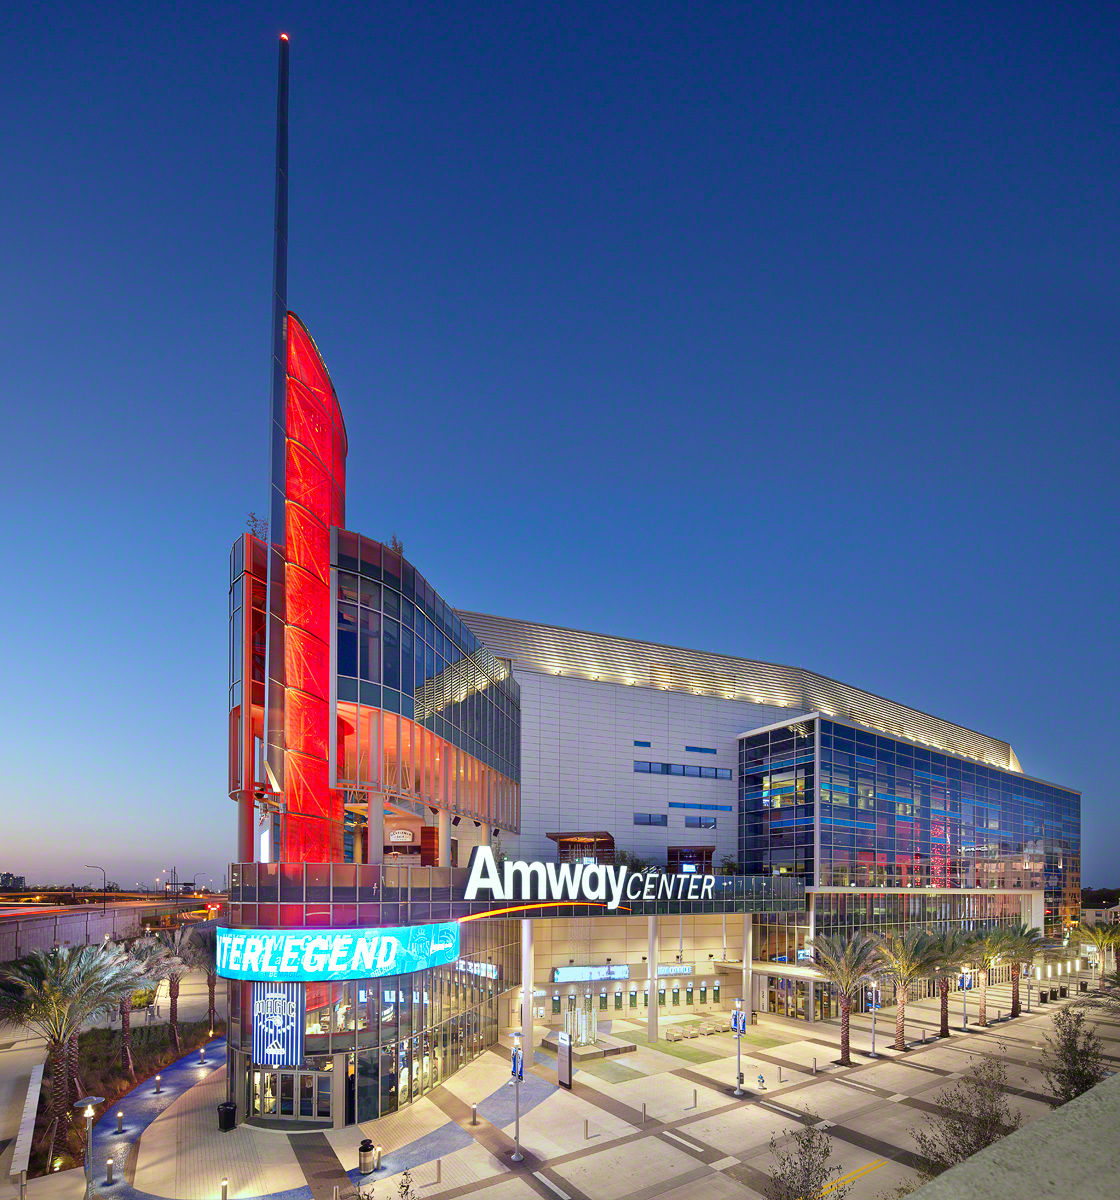 chair design garden folding chairs 4 less amway center achieves leed gold certification | populous